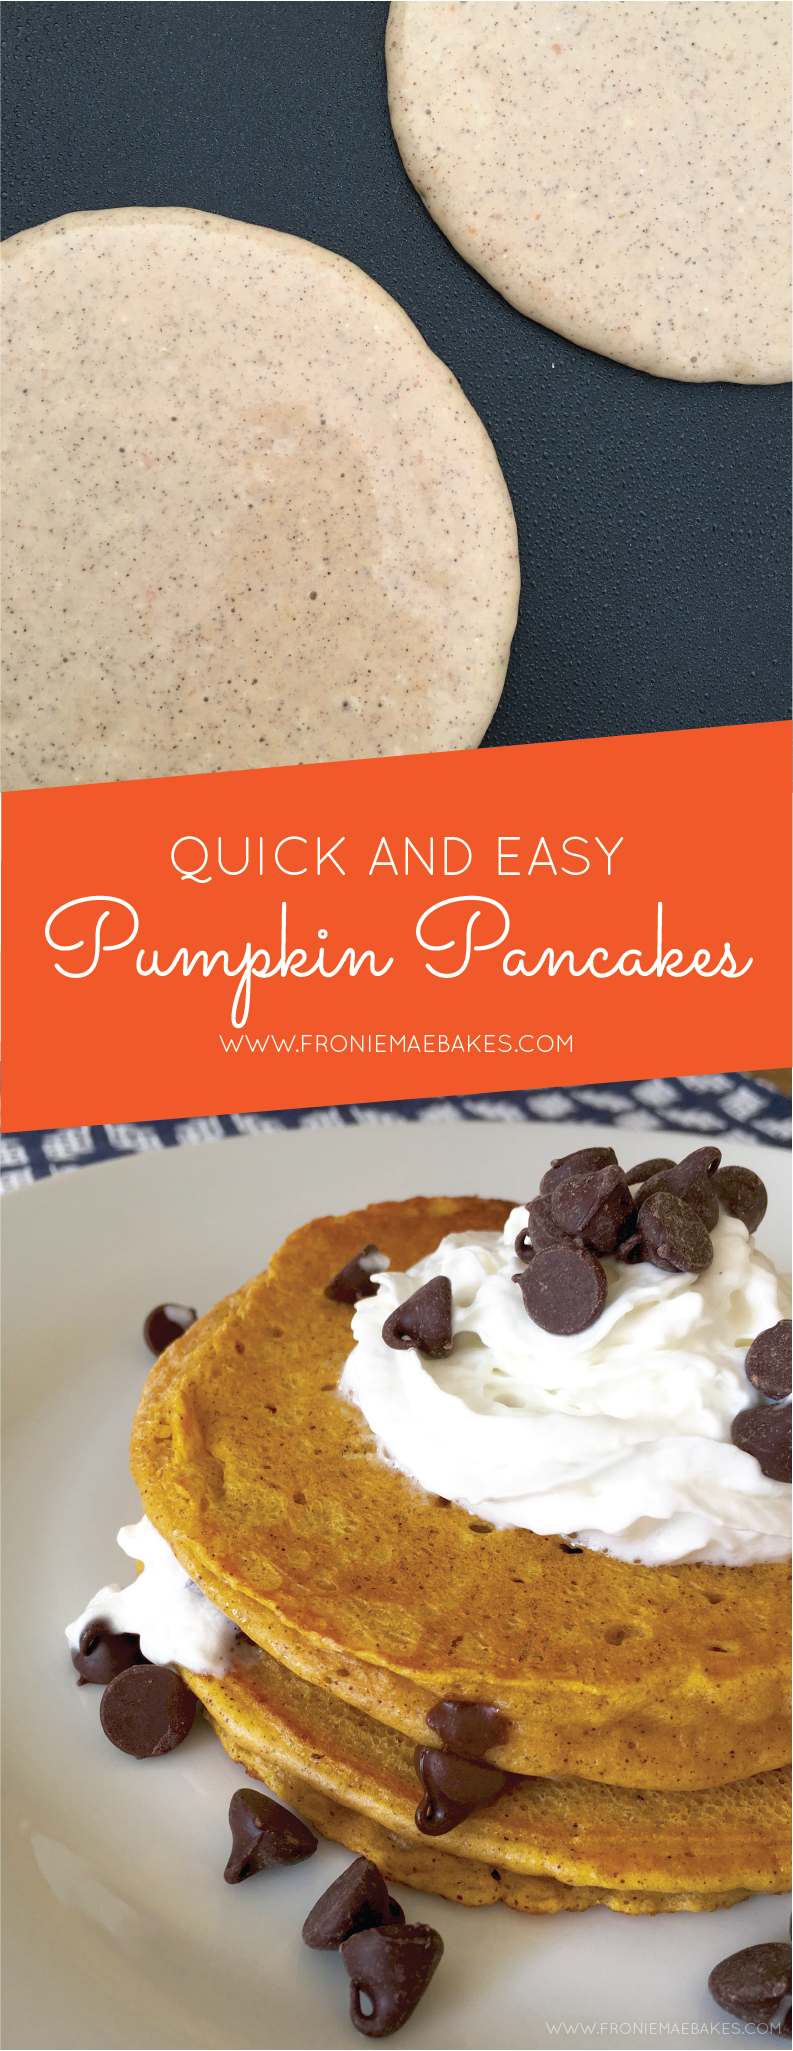 Make these delicious quick and easy pumpkin pancakes today! www.froniemaebakes.com